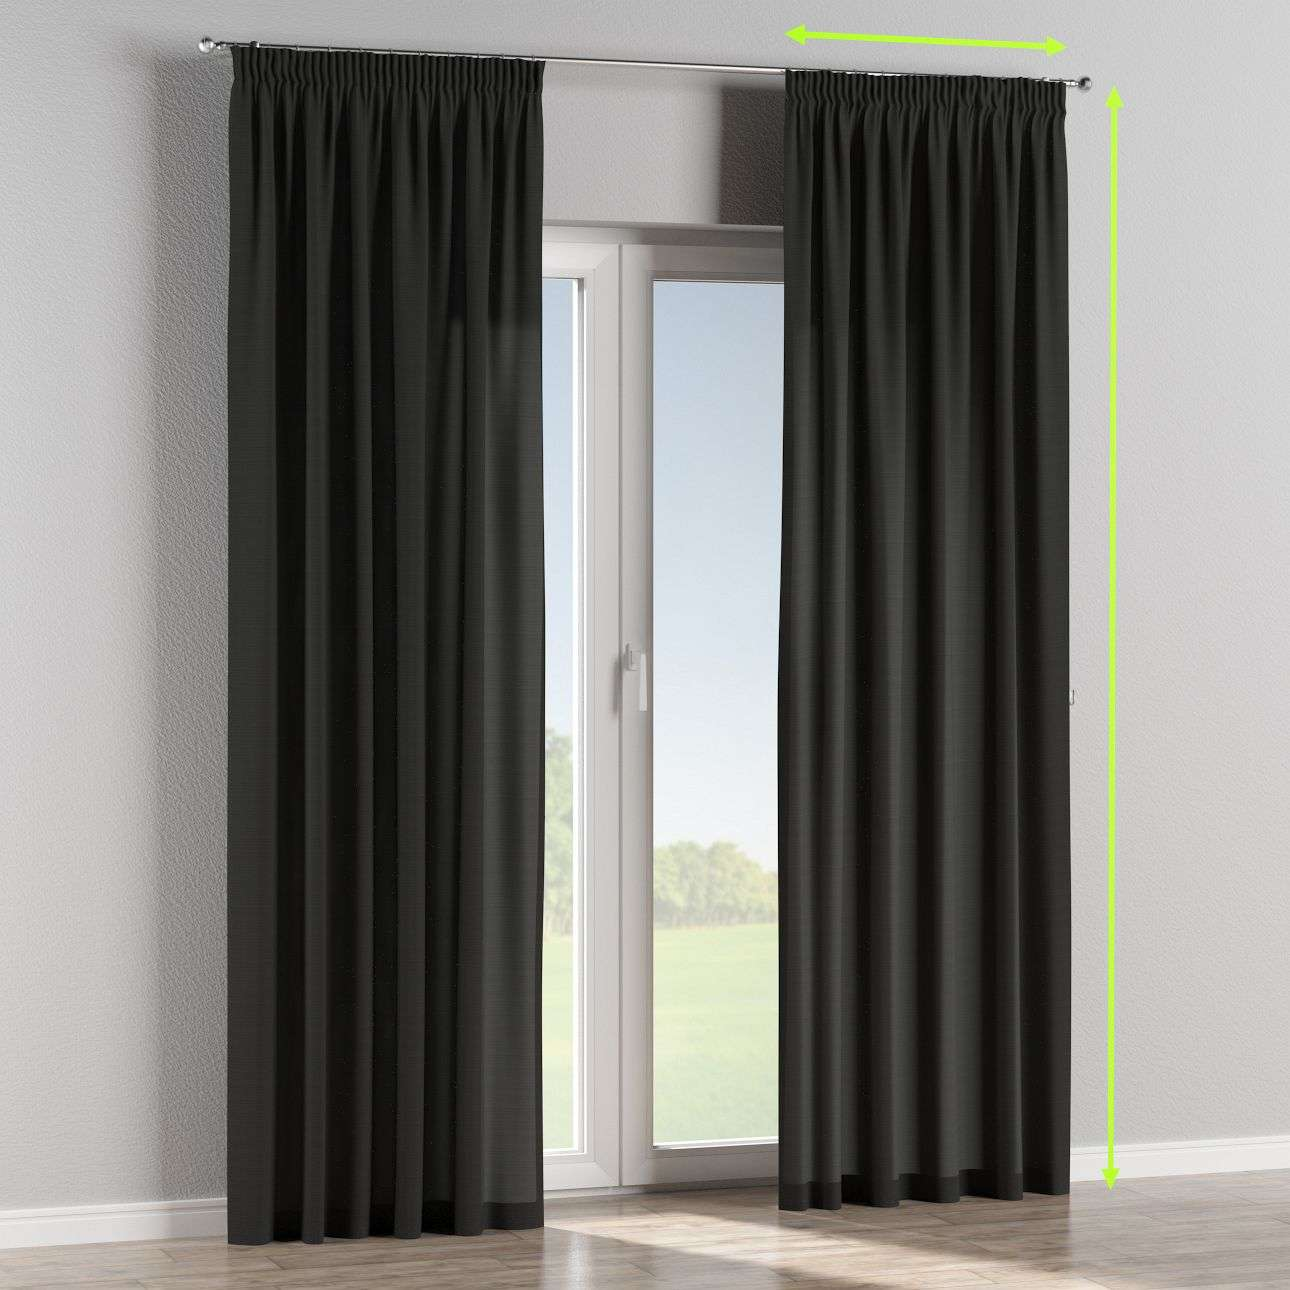 Pencil pleat curtains in collection Jupiter, fabric: 127-99